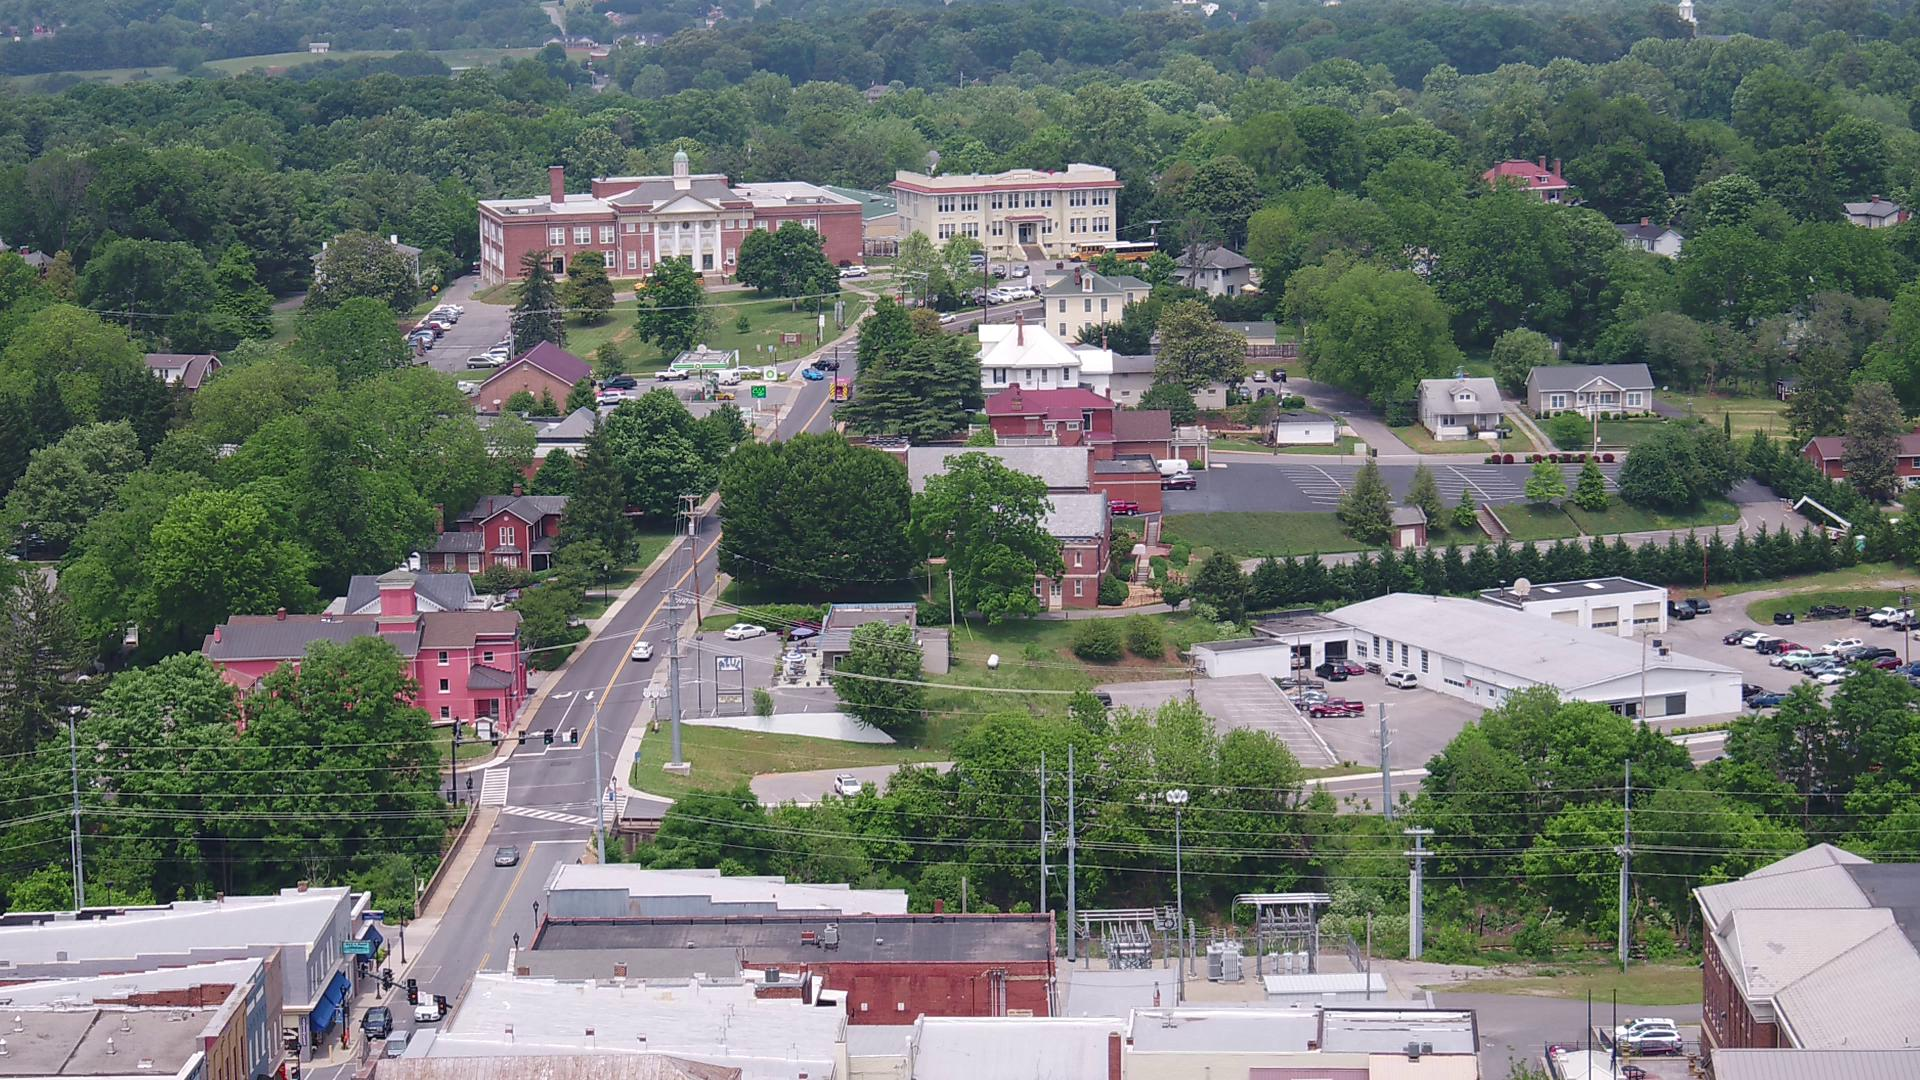 SKY13 over main street in Bedford